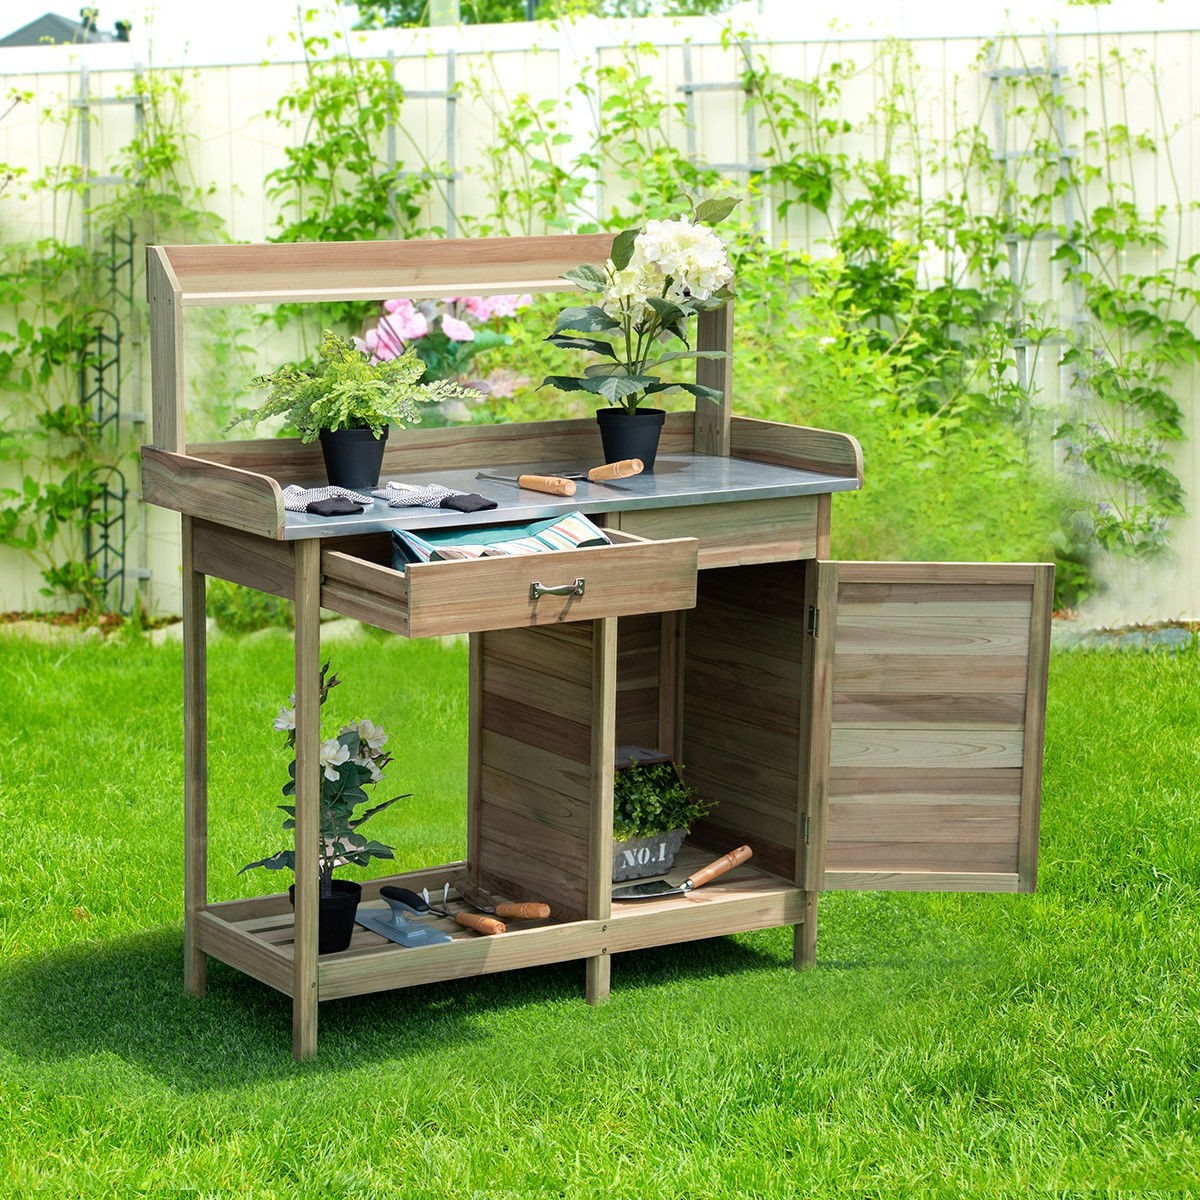 Fabulous Outdoor Garden Wooden Work Station Potting Bench Andrewgaddart Wooden Chair Designs For Living Room Andrewgaddartcom